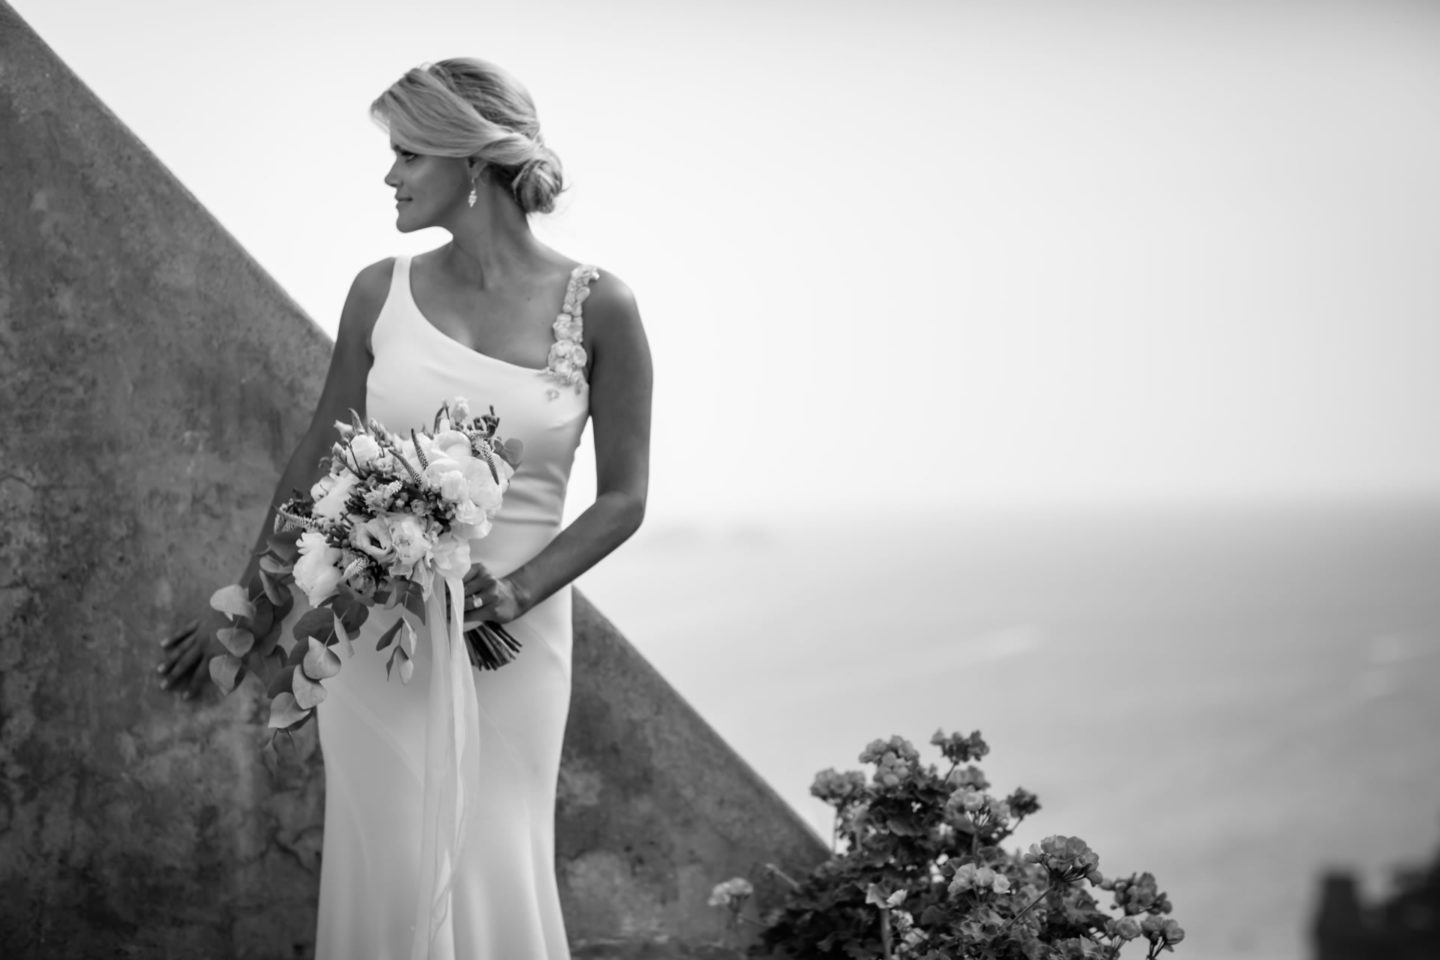 Flowers :: Wedding in Positano. Sea and love :: Wedding photographer based in Florence Tuscany Italy :: photo-33 :: Flowers